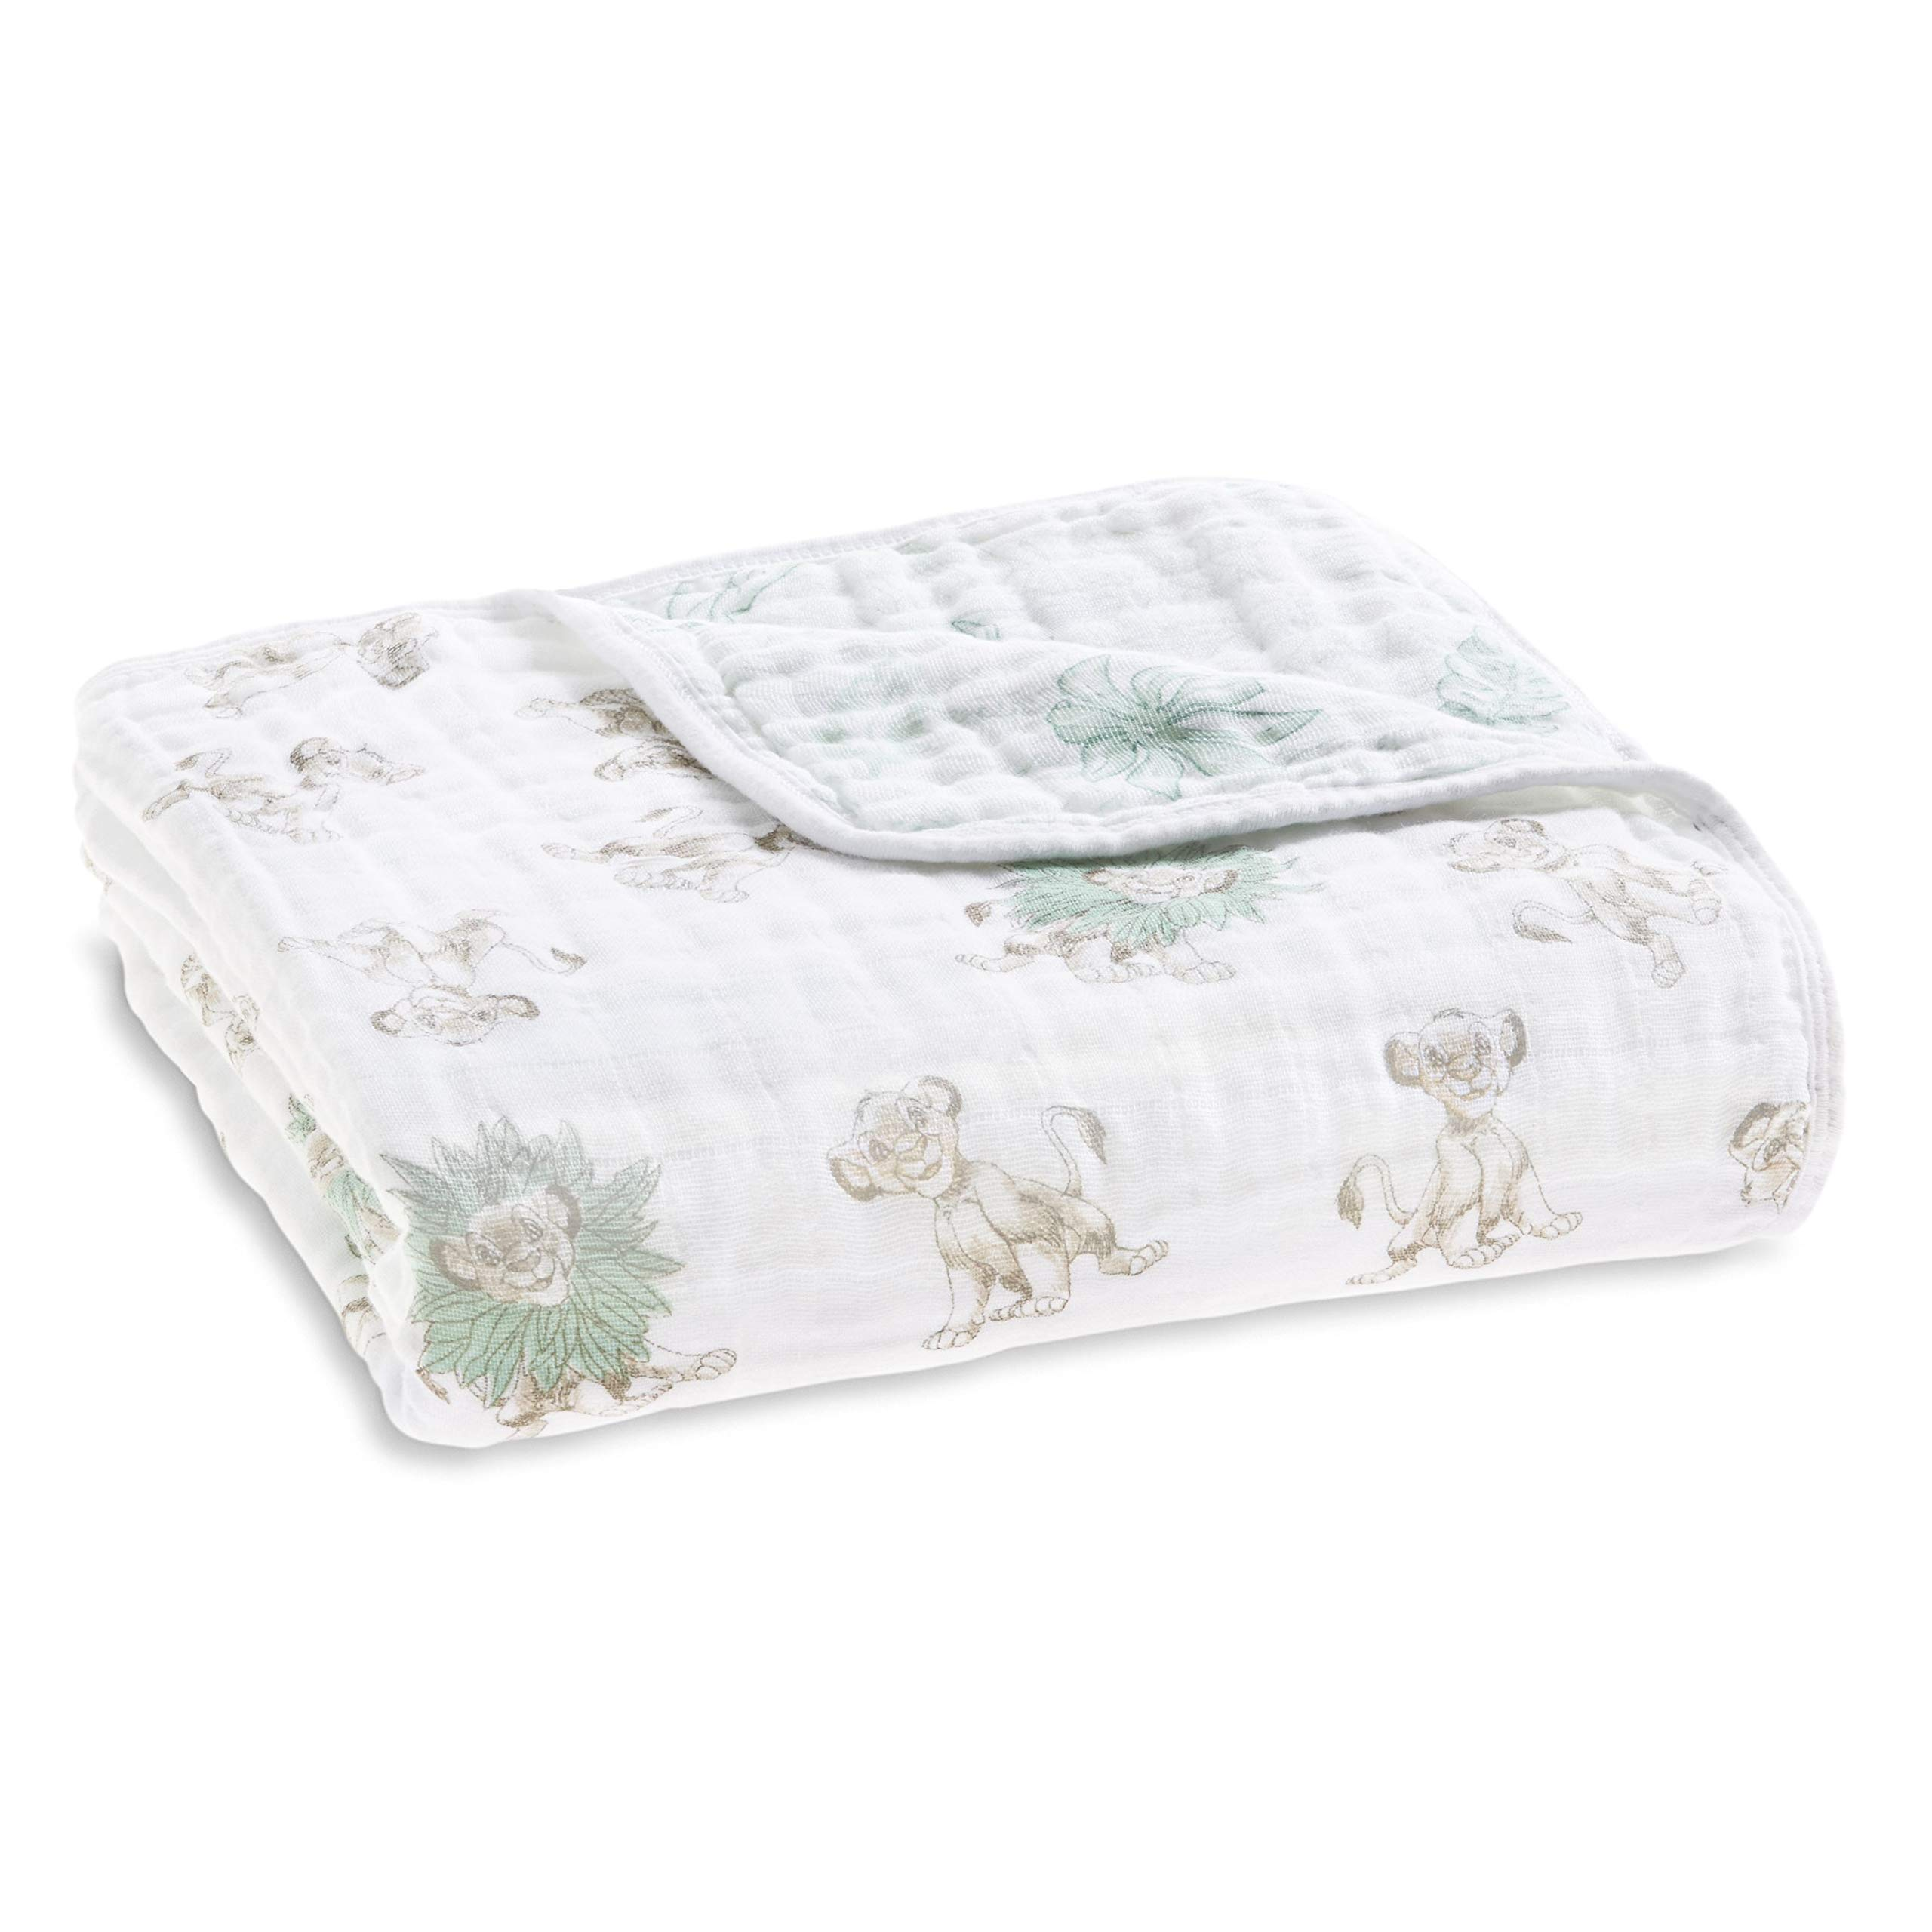 aden + anais Dream Blanket, 100% Cotton Muslin, 4 Layer Lightweight and Breathable, Large 47 X 47 inch, Lion King